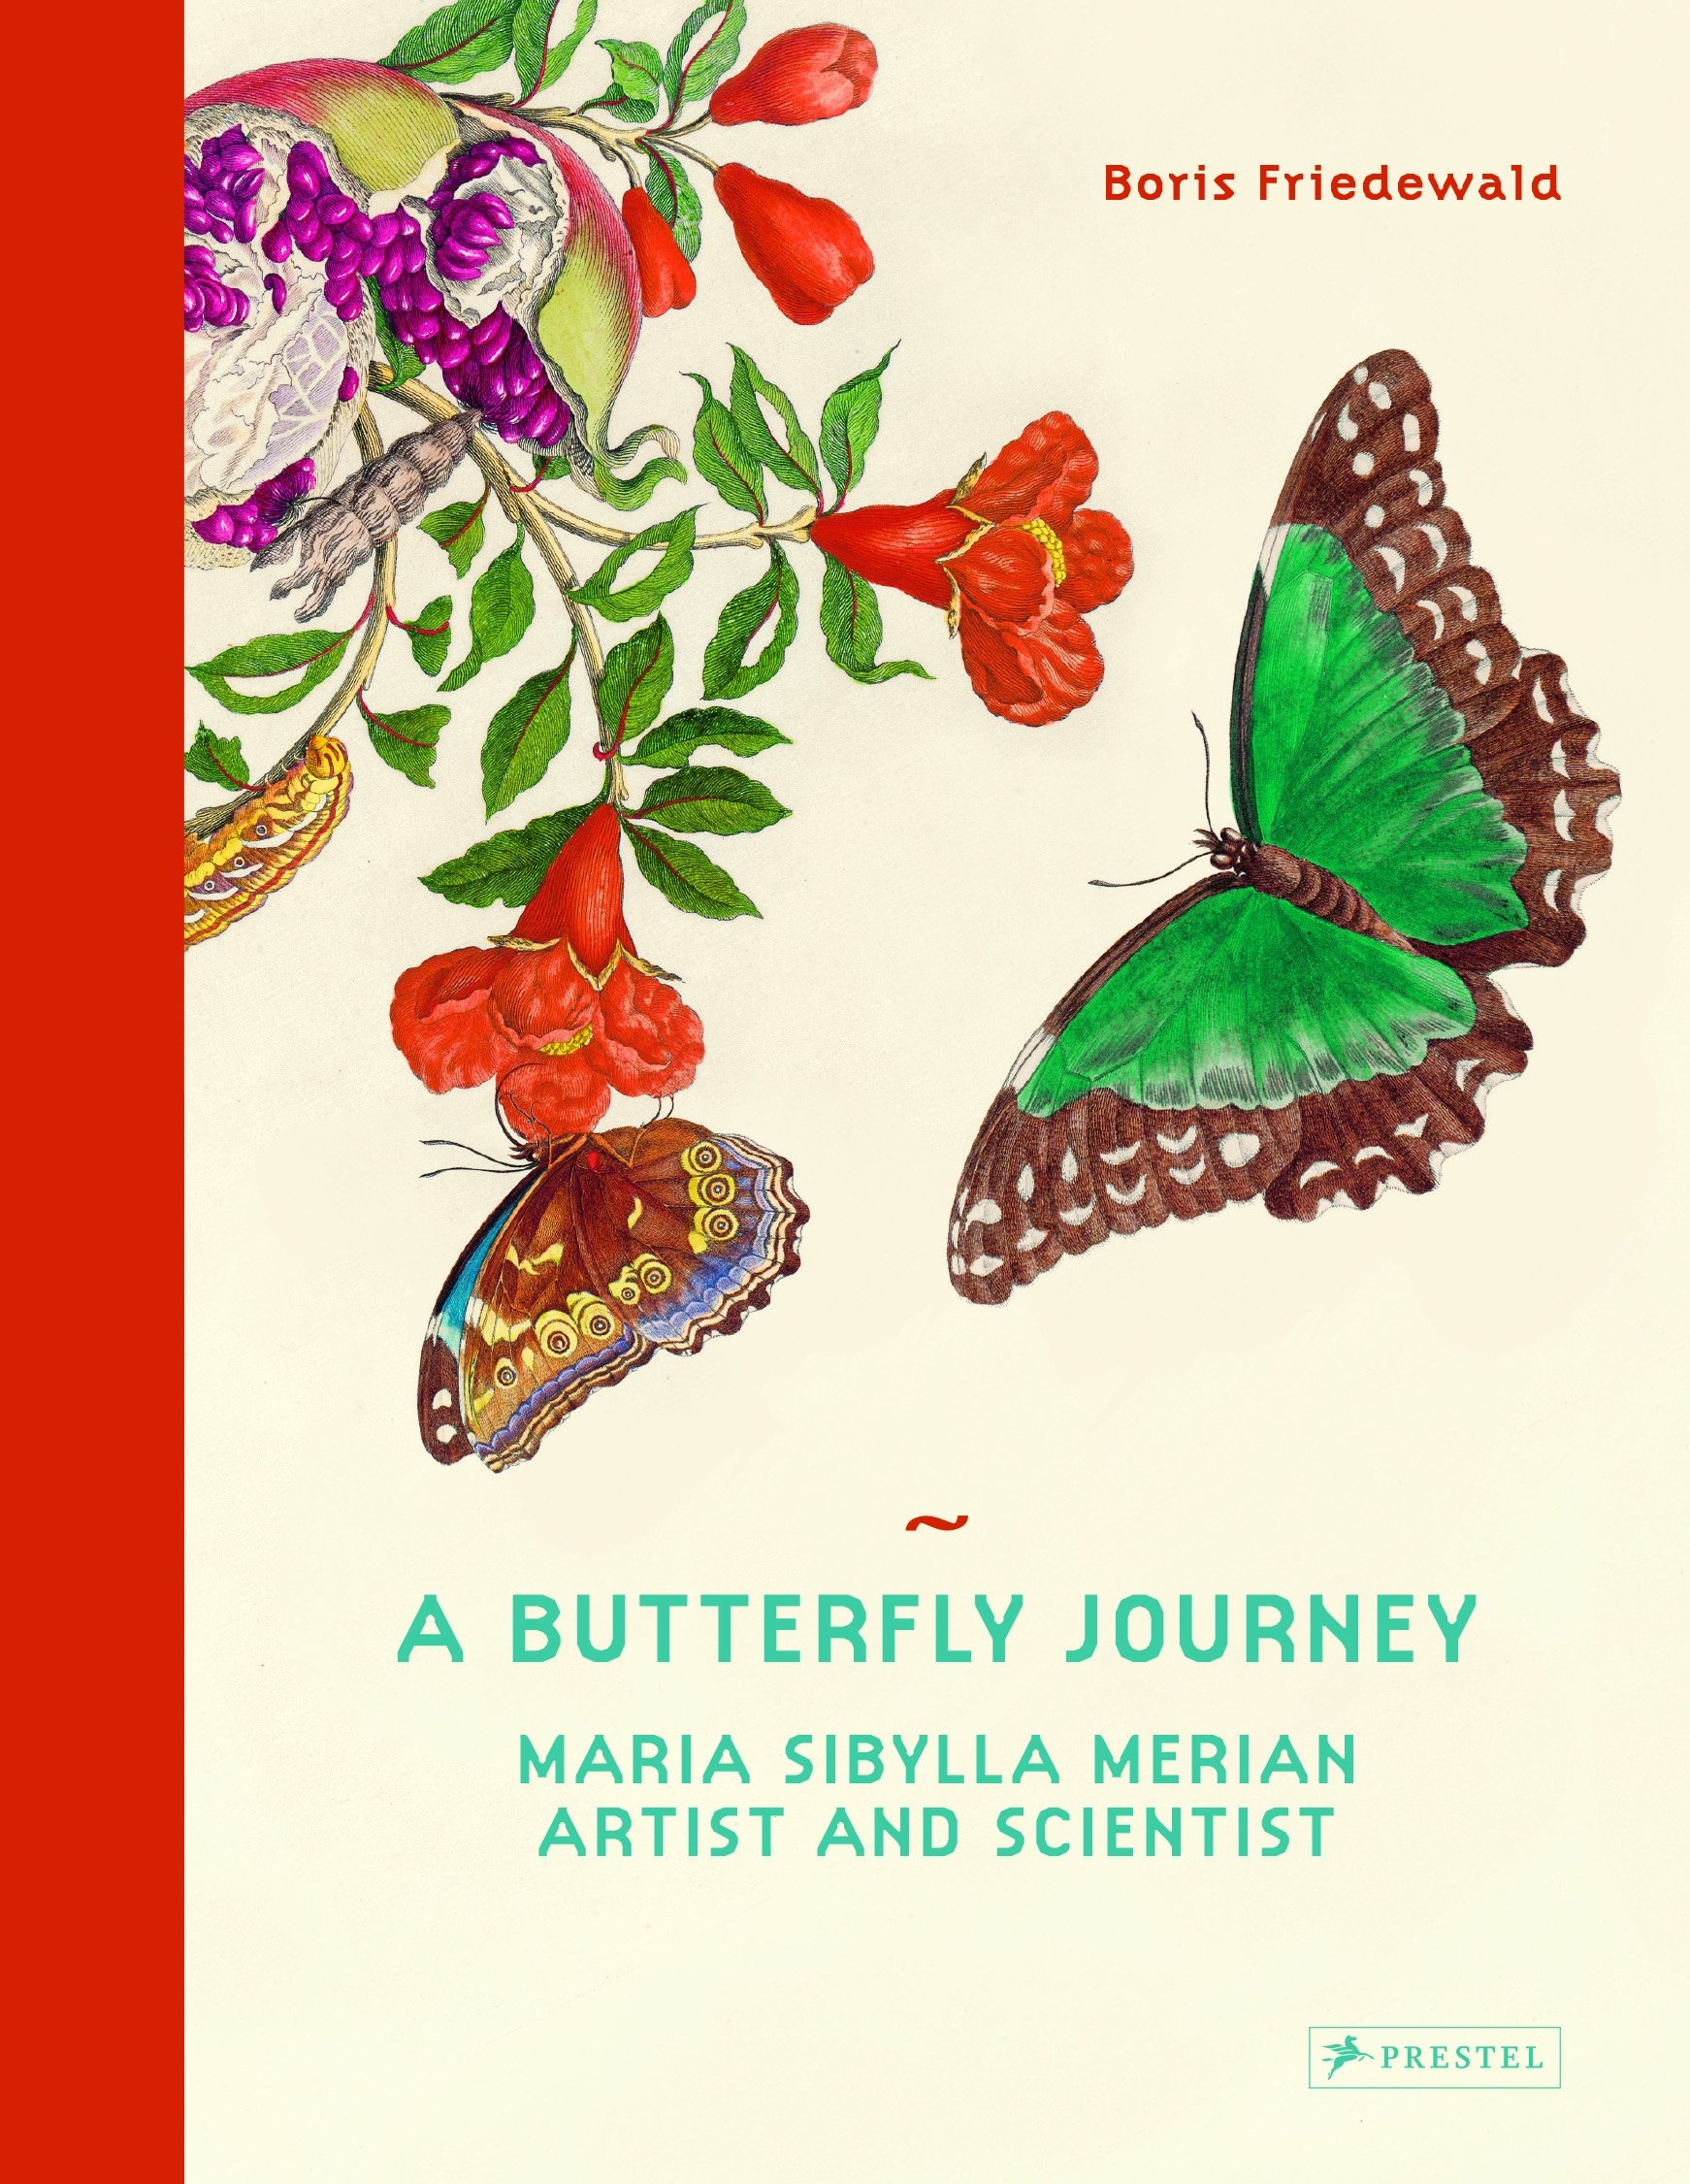 insects and flowers the art of maria sibylla merian co uk a butterfly journey maria sibylla merian artist and scientist